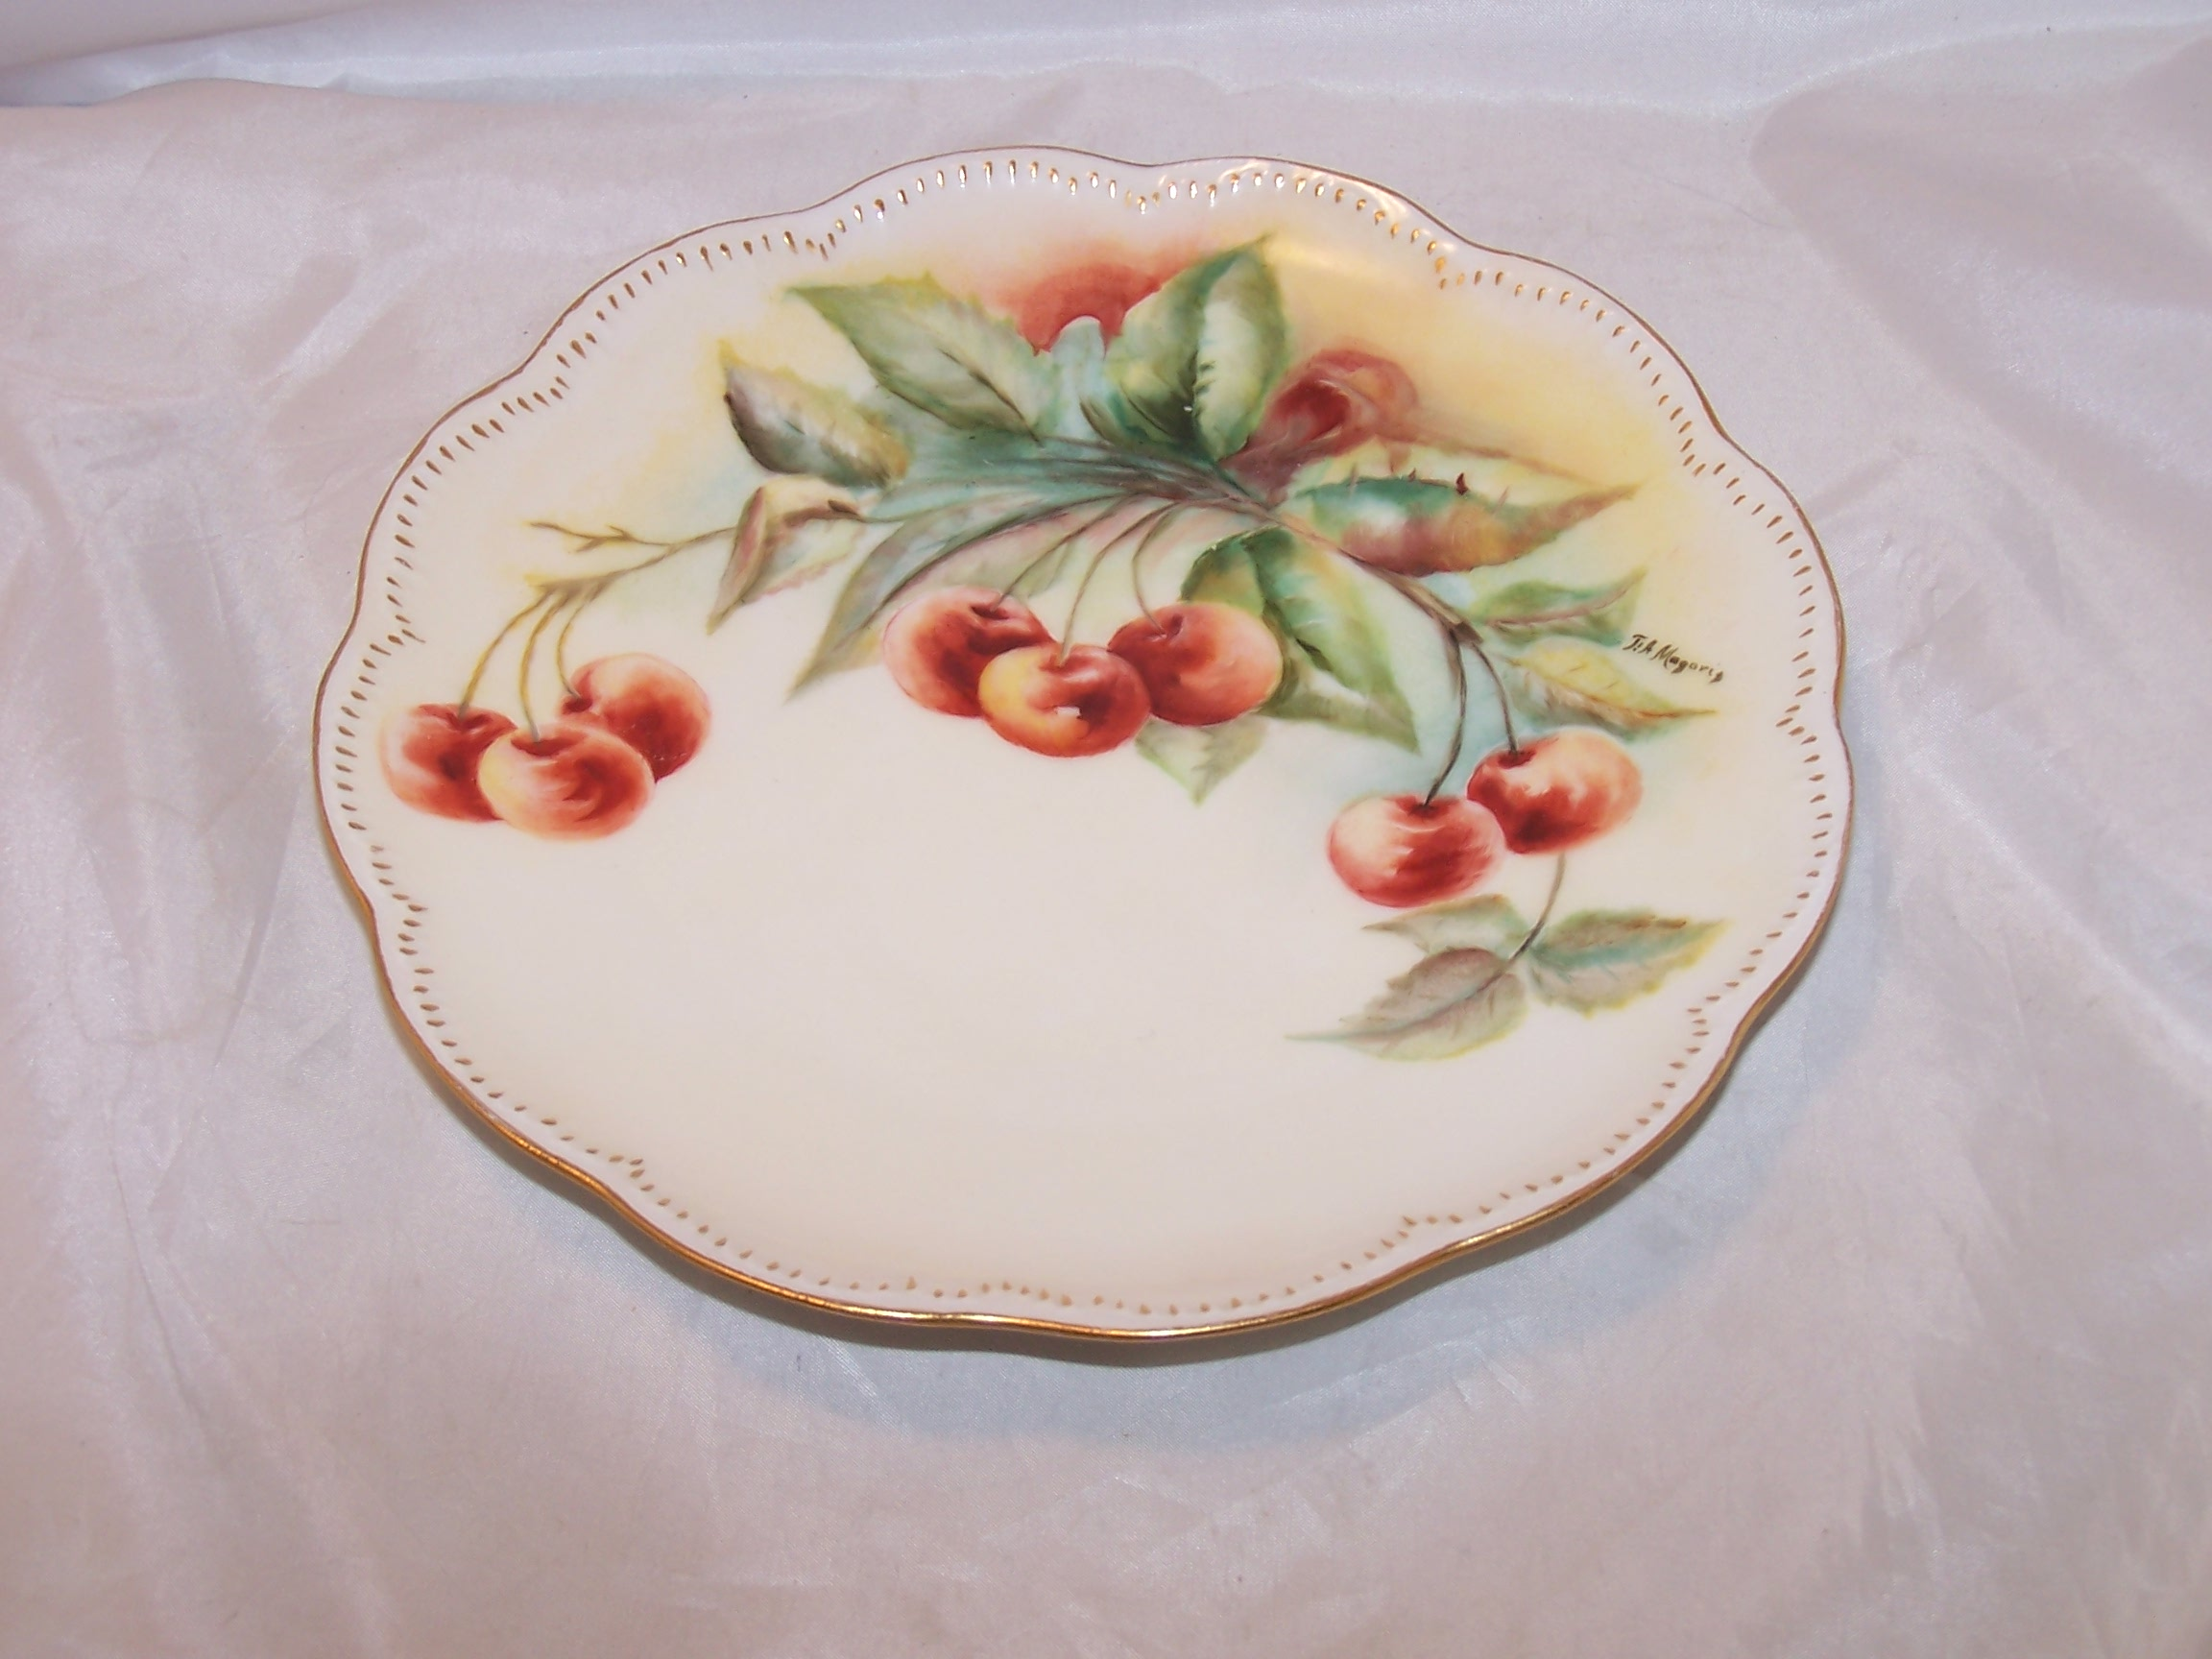 Image 4 of Haviland France Cherry Branch Plate, Artist Signed Magoris